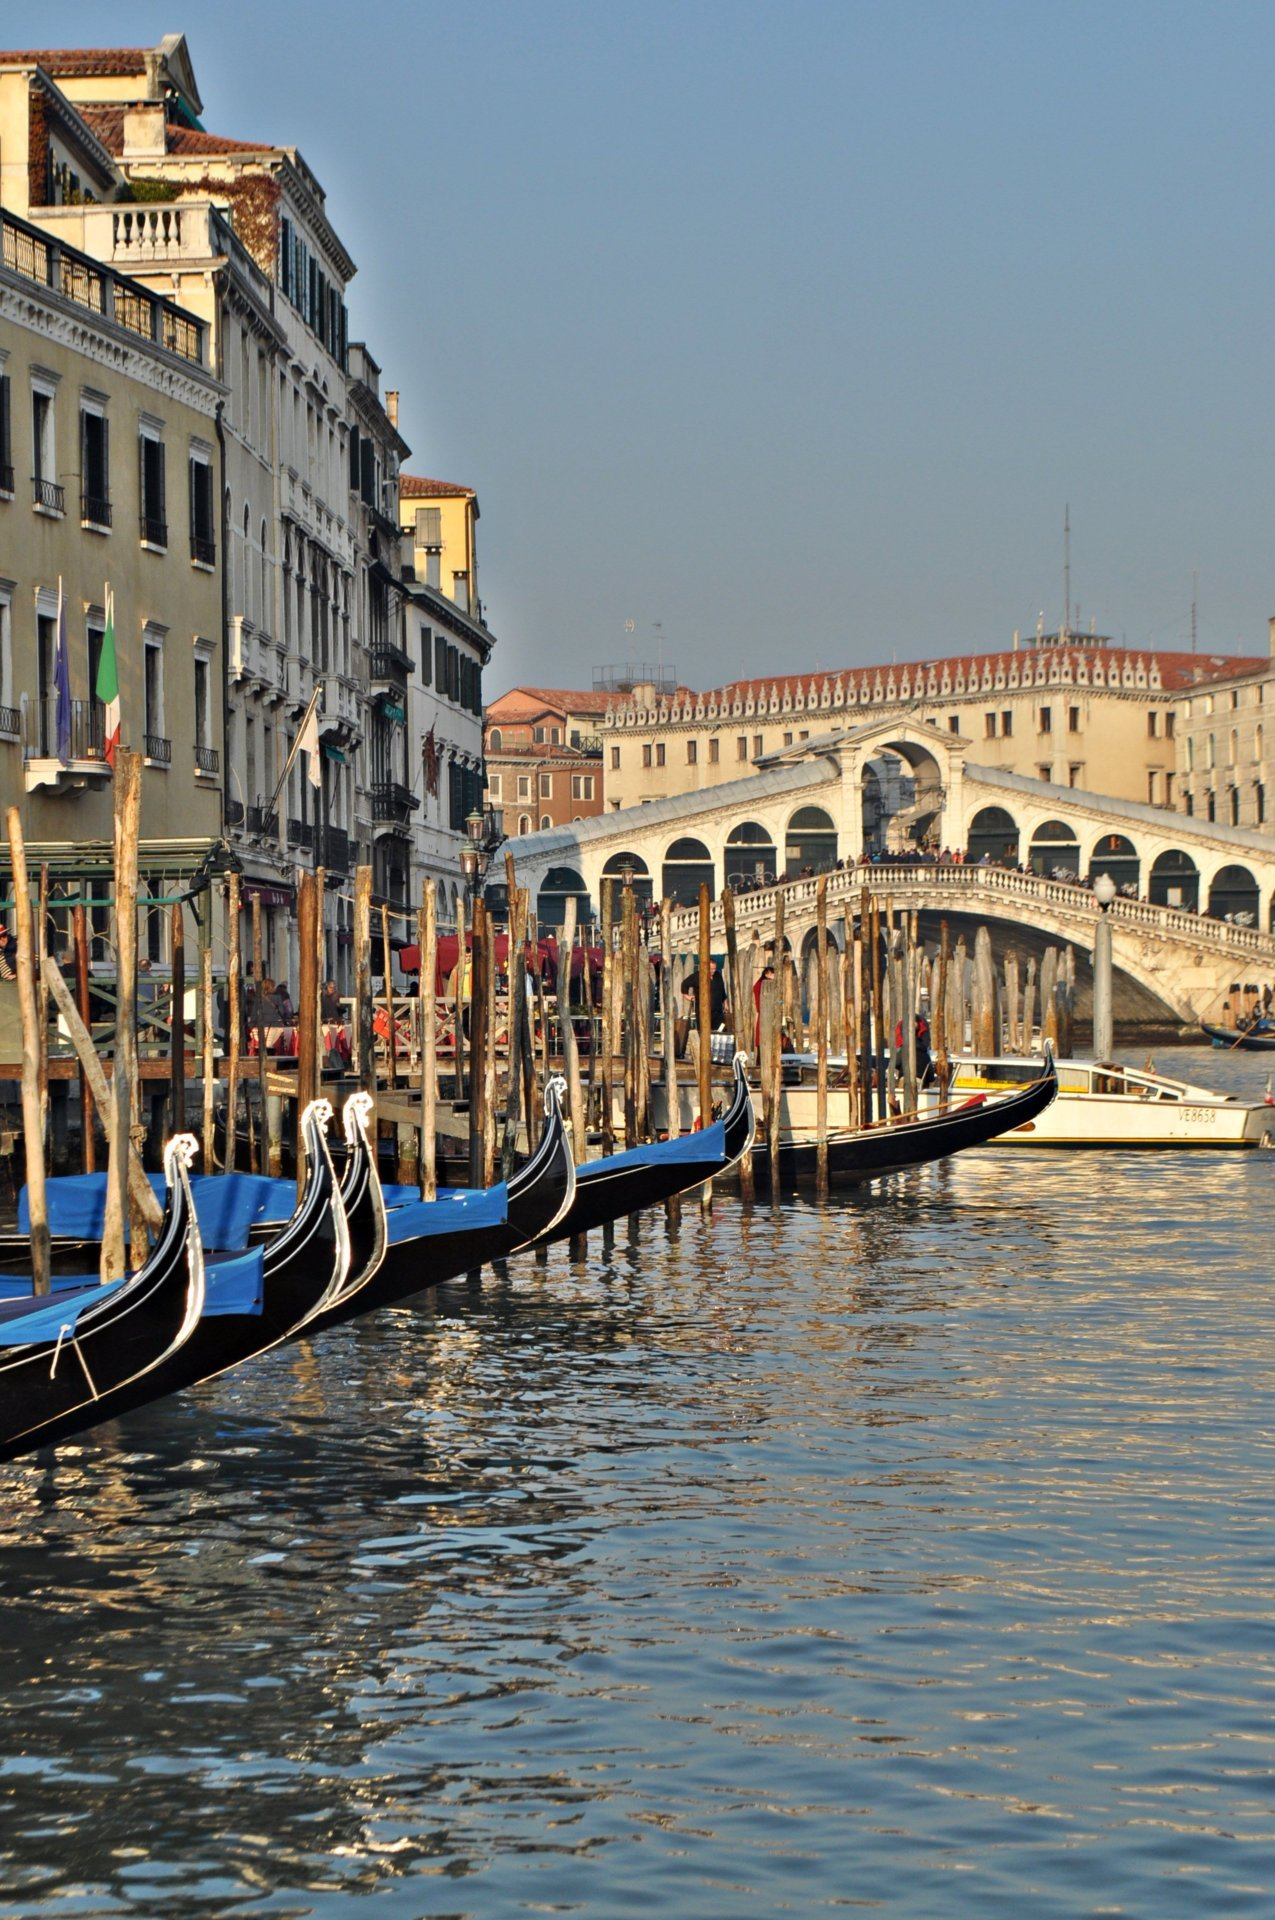 travelingcolors:  Grand Canal, Venice | Italy  Photo taken by me (travelingcolors)